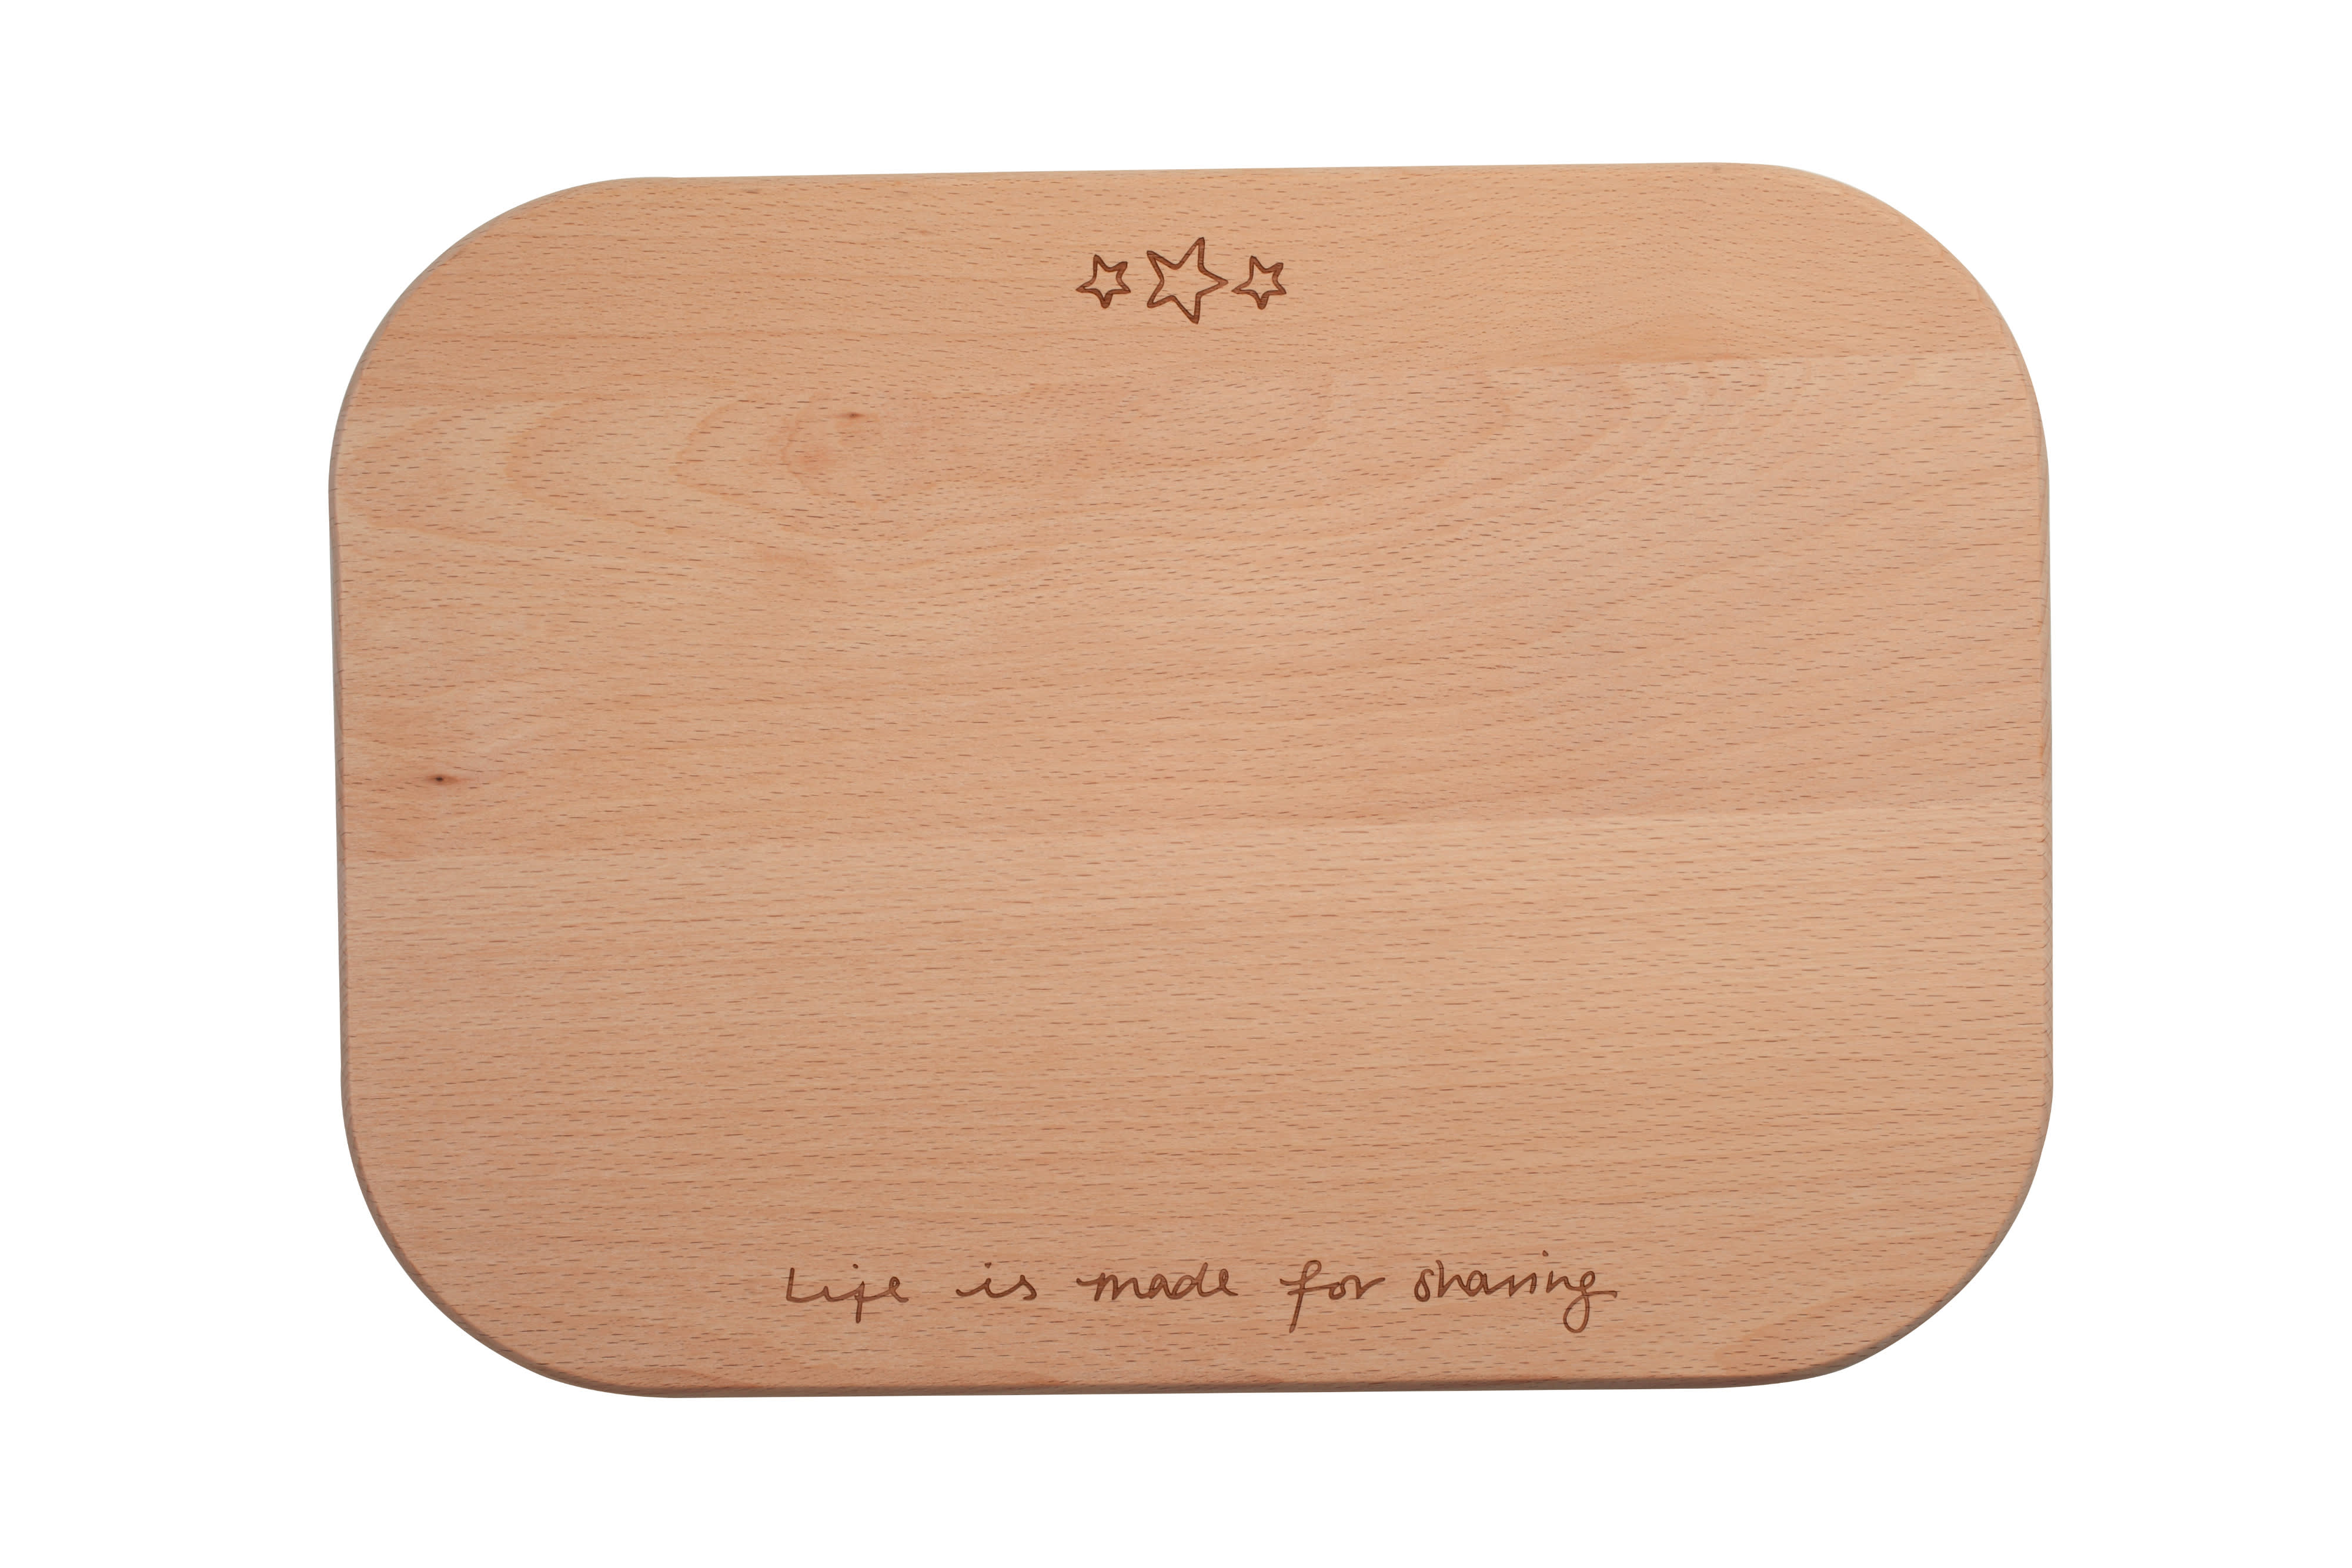 T&G Sophie Conran Set of Two Rectangular Wooden Boards